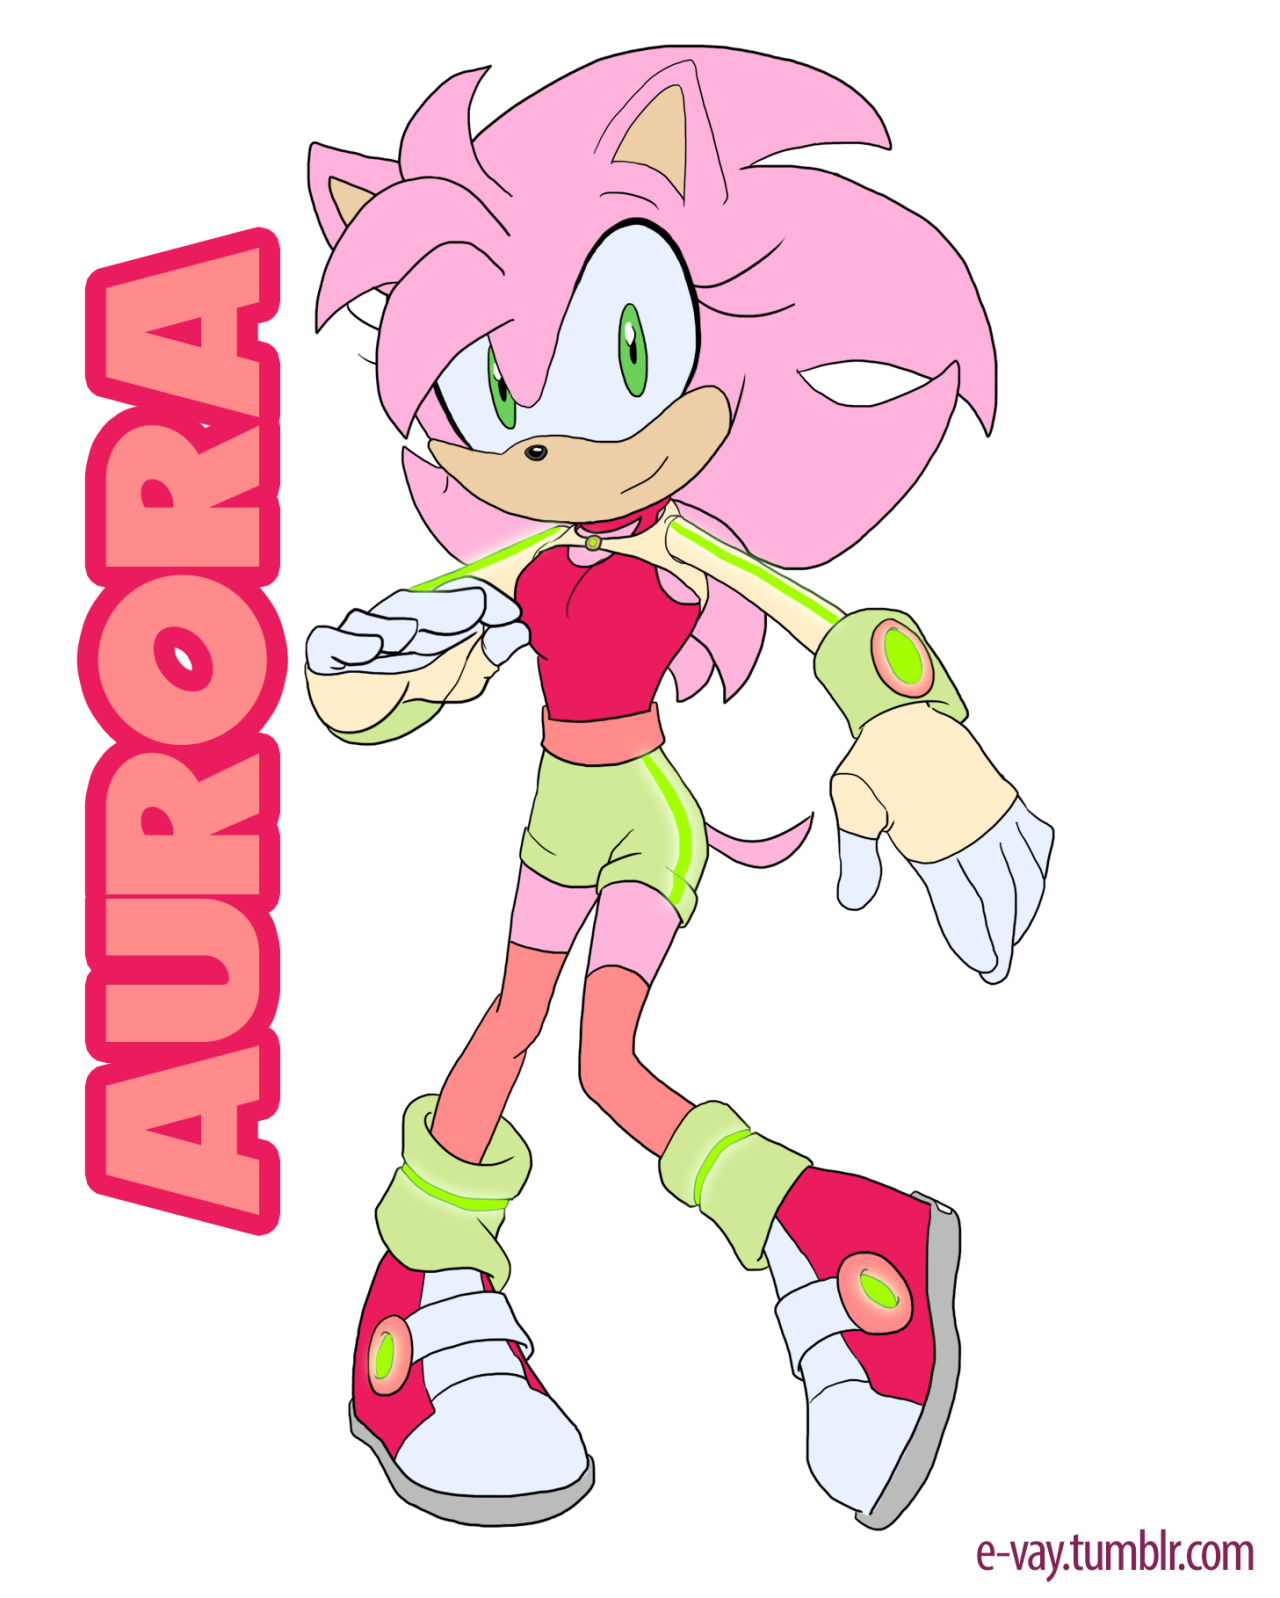 Aurora the Hedgehog